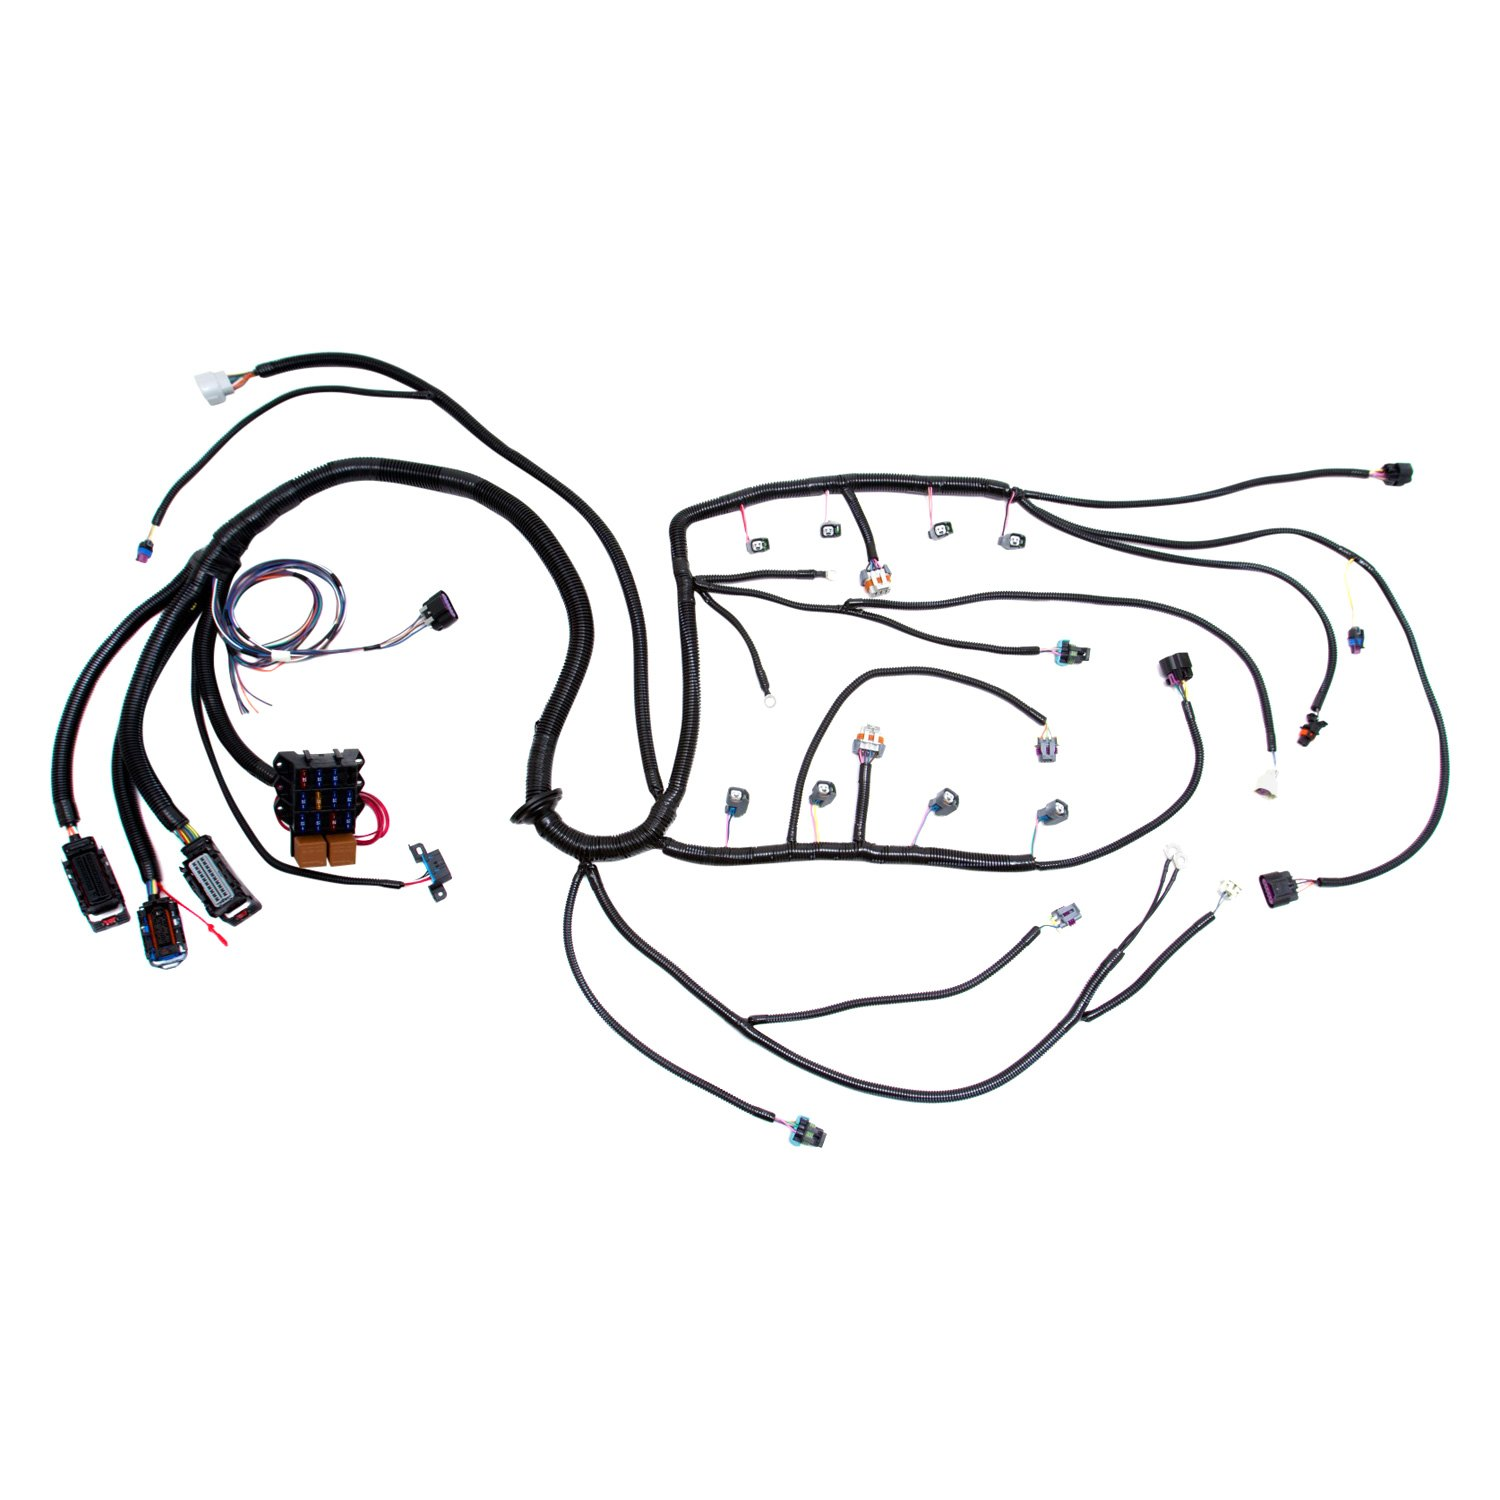 wiring harness for truck camper